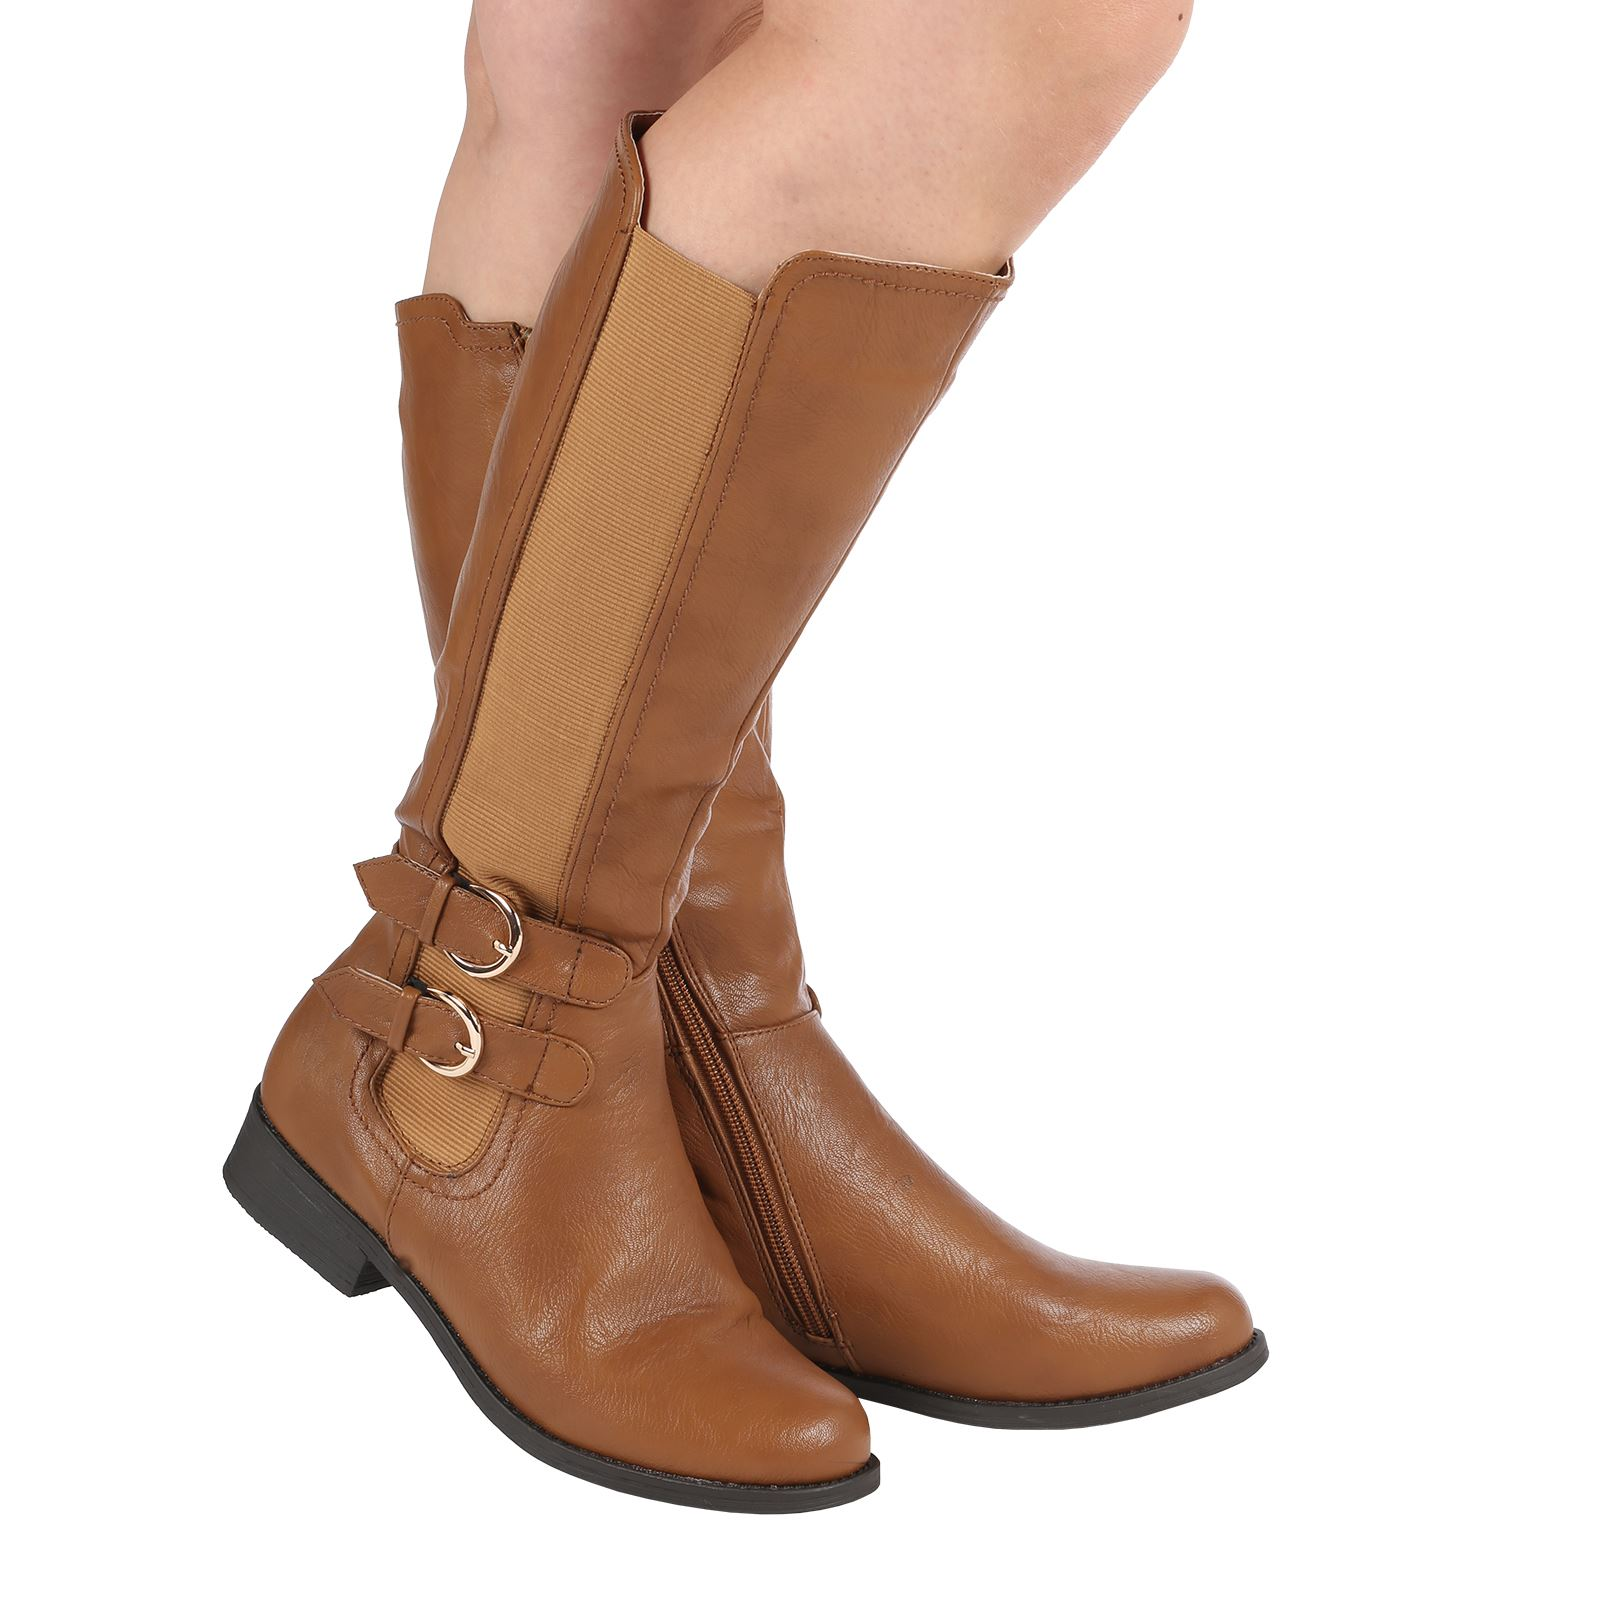 Creative Ladies Knee High Genuine Leather Boots Womenu0026#39;s Small Heel Riding Style Shoes | EBay